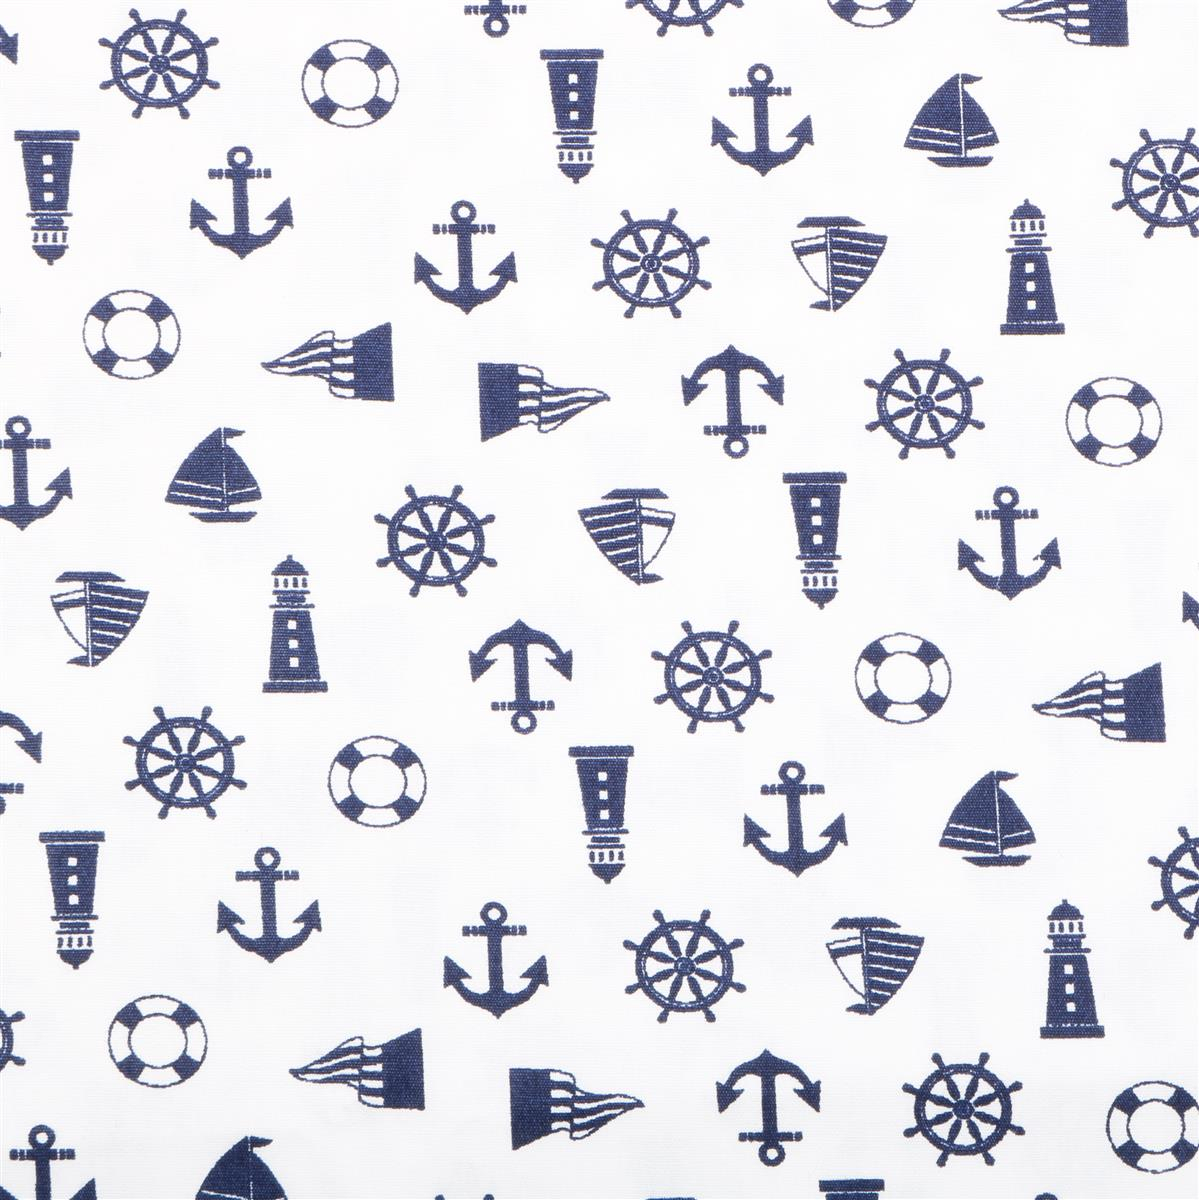 Nautical Embroidery Patterns Nautical Fabric On White Background 05m Was 355